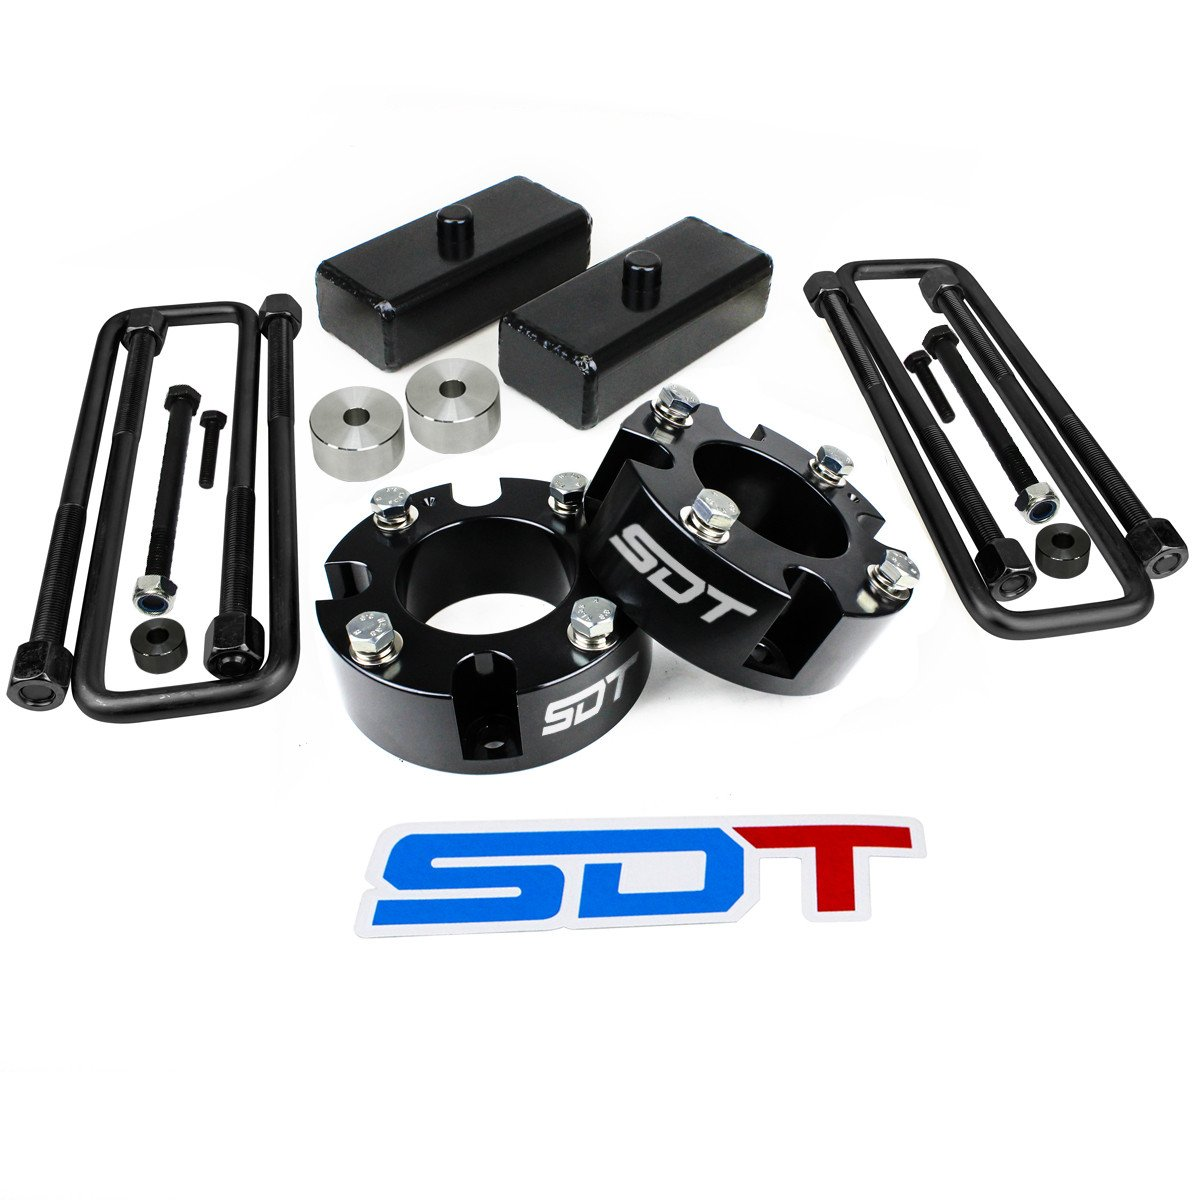 Toyota Tundra 4WD 2WD Full Lift Leveling Kit 3 Front 1.5 Rear with Differential Drop